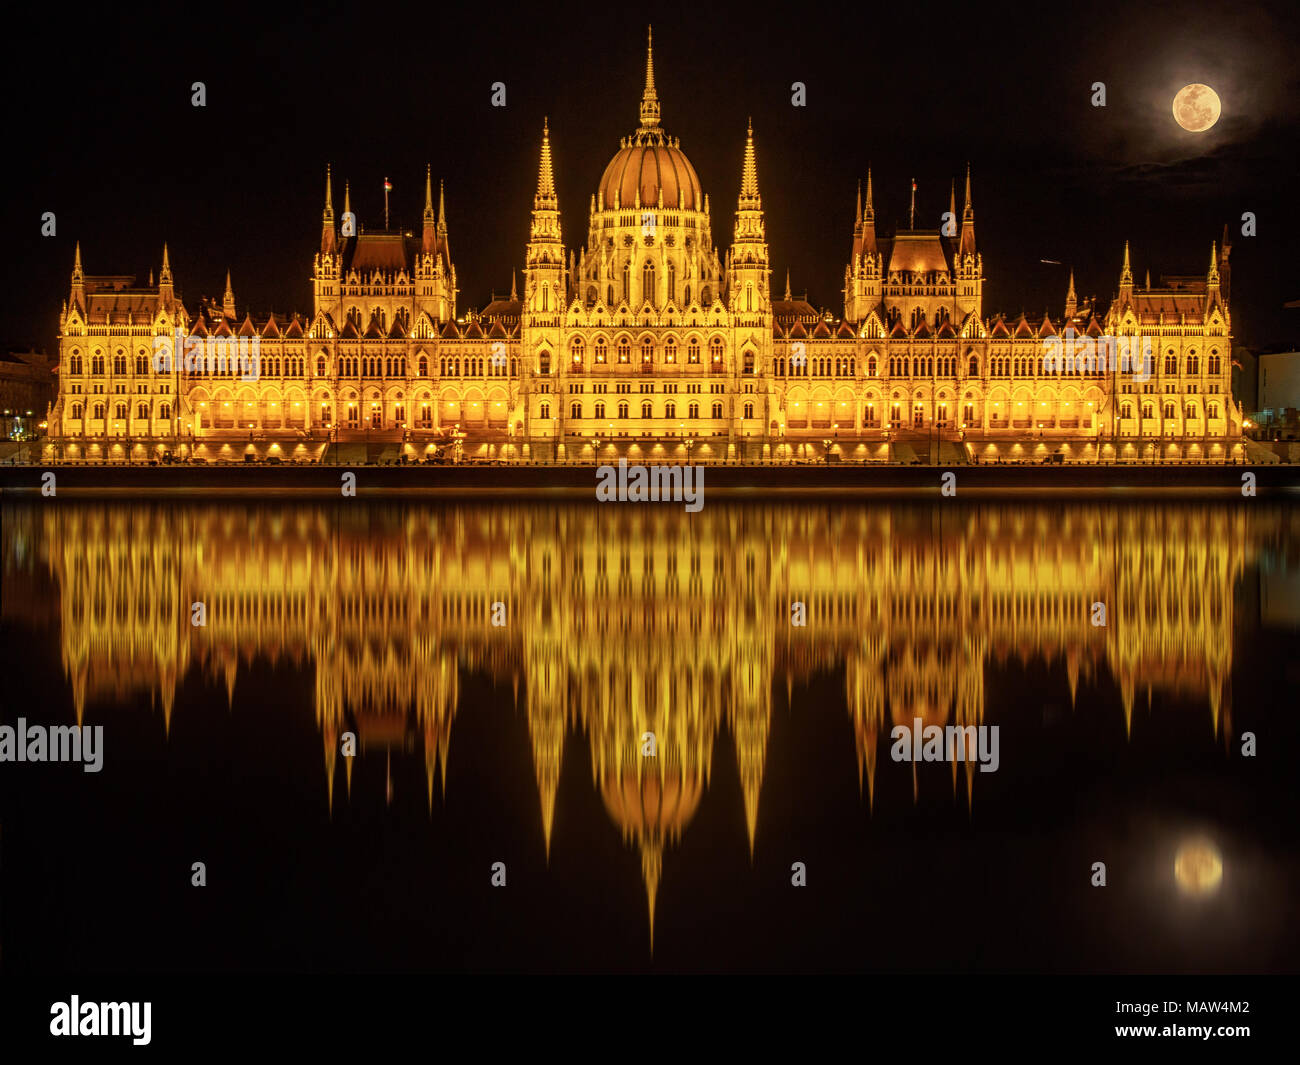 Hungarian Parliament Building (Budapest) at night reflected in water of Danube River and with full Moon above it - Stock Image